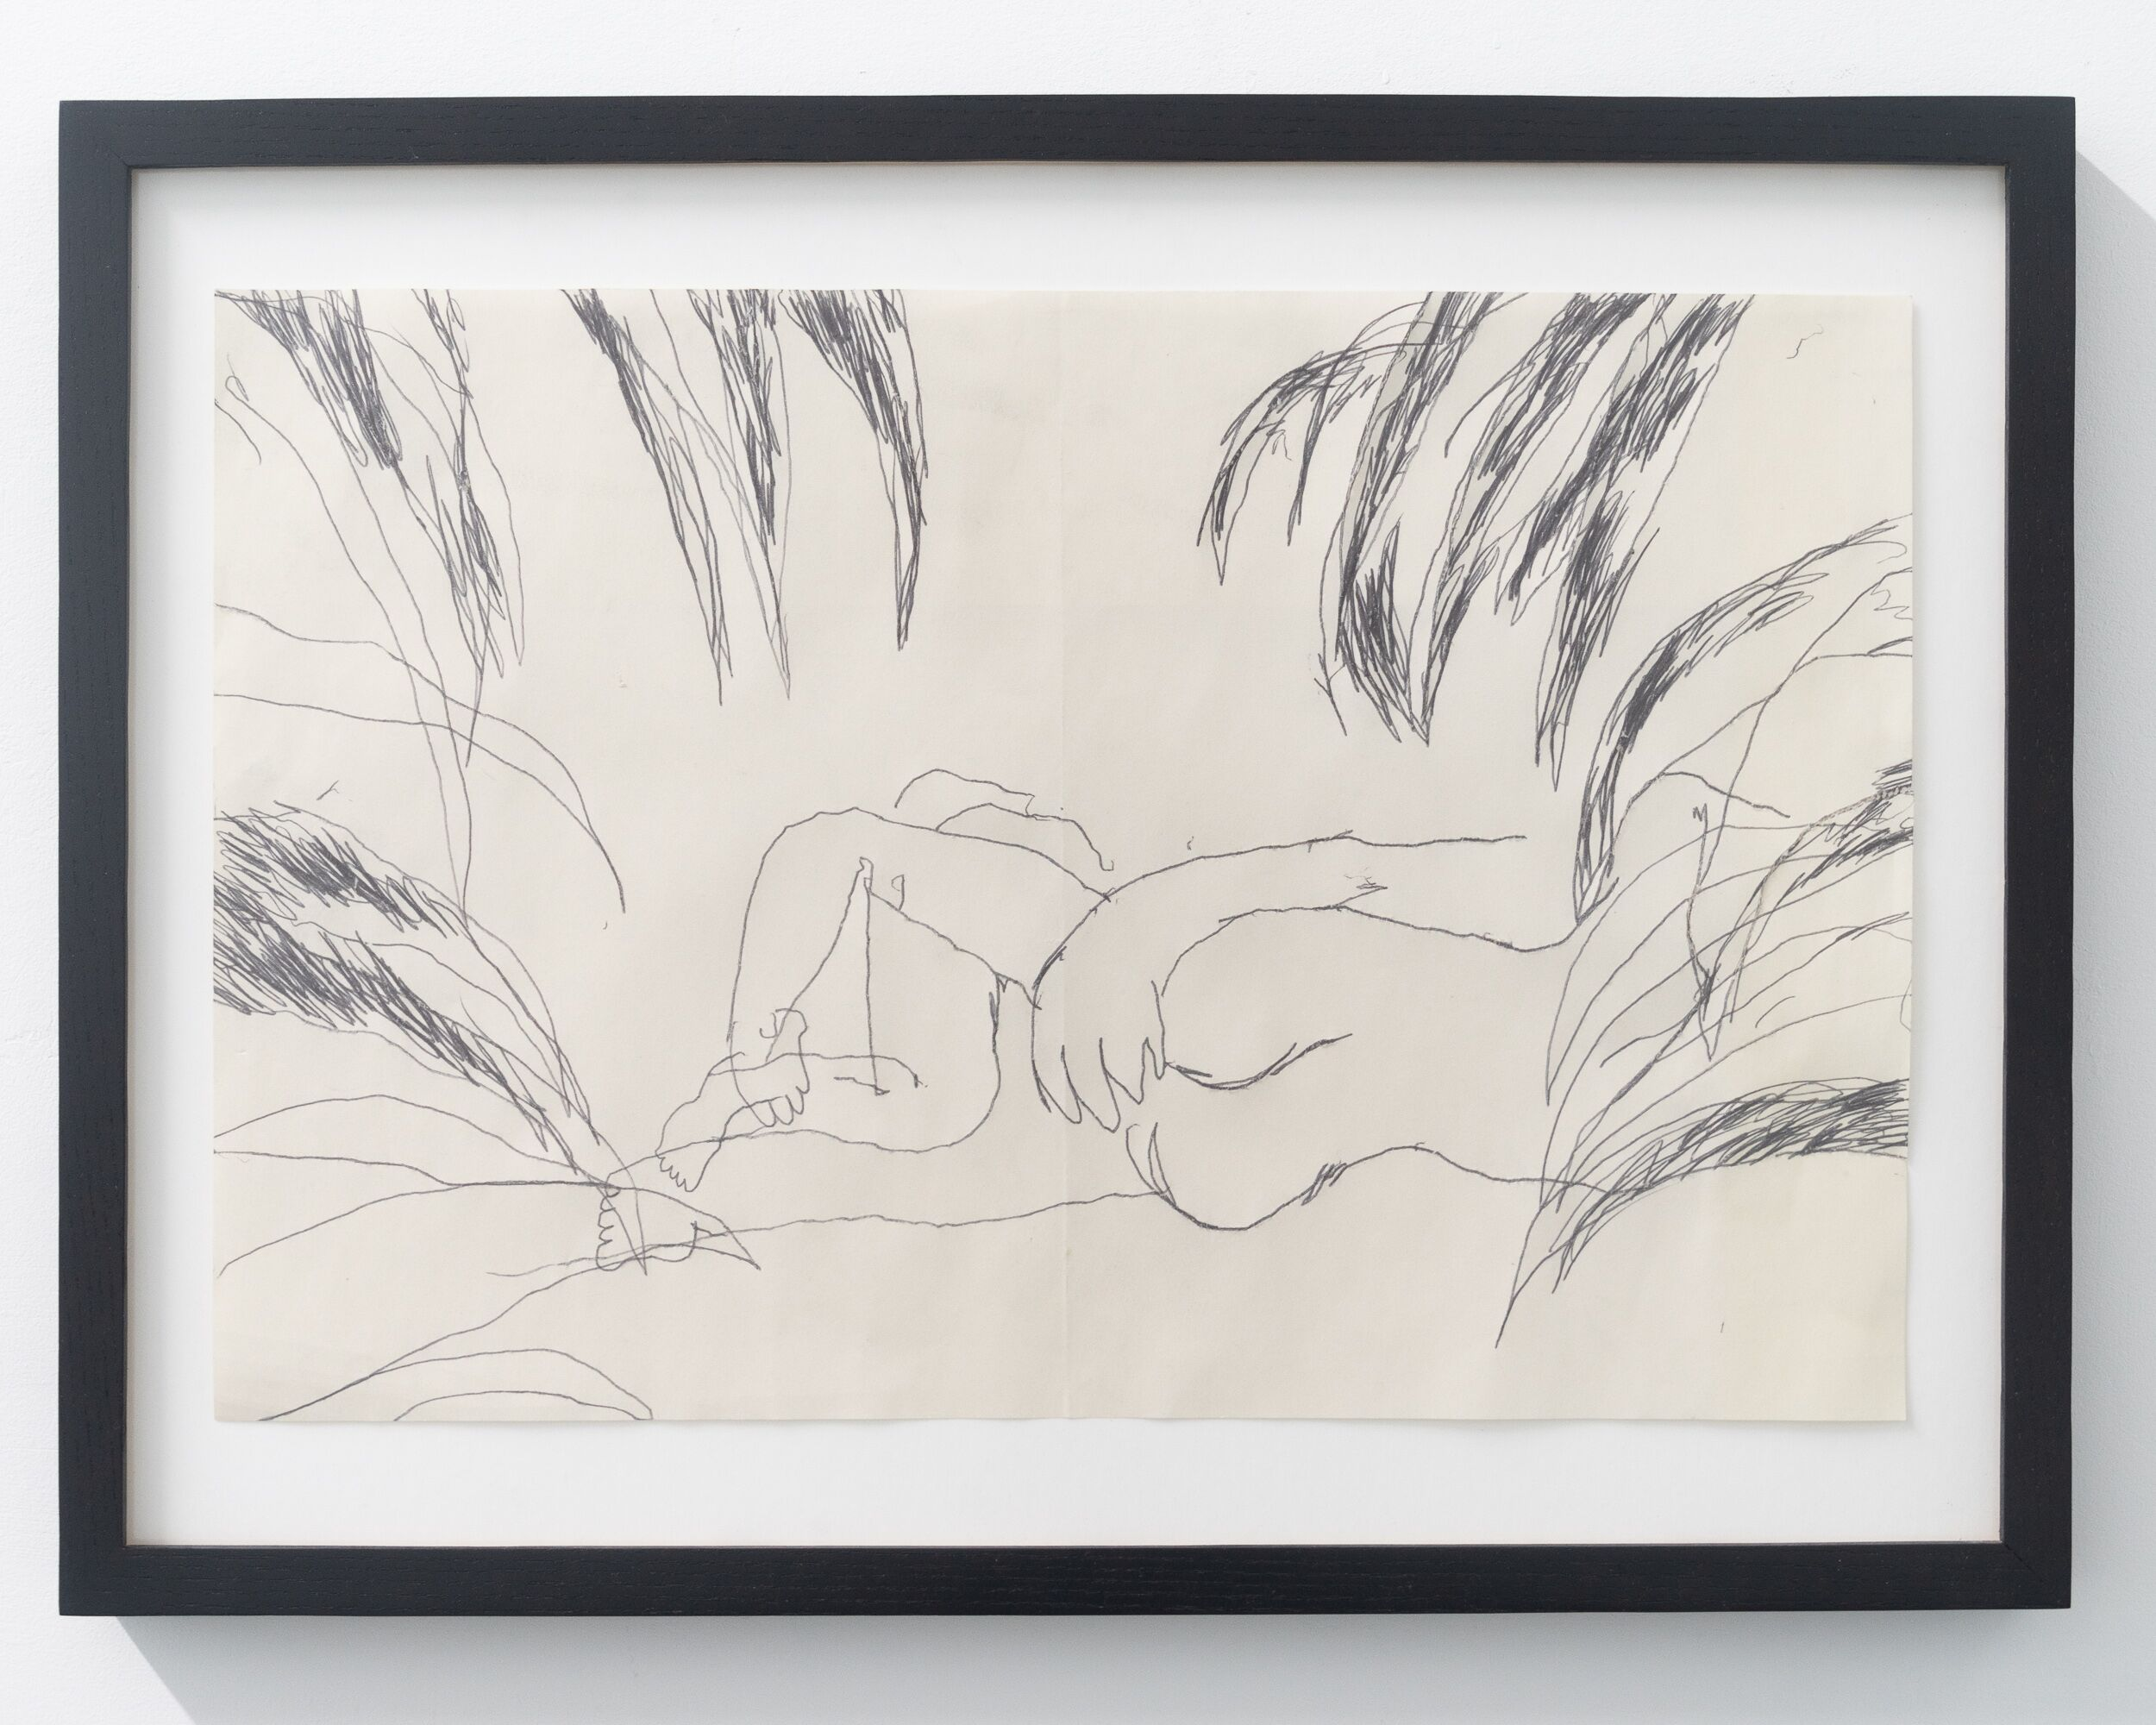 Emilie Gossiaux   In the Bushes , 2018 26 1/2 x 17 1/2 inches 67.3 x 44.5 cm